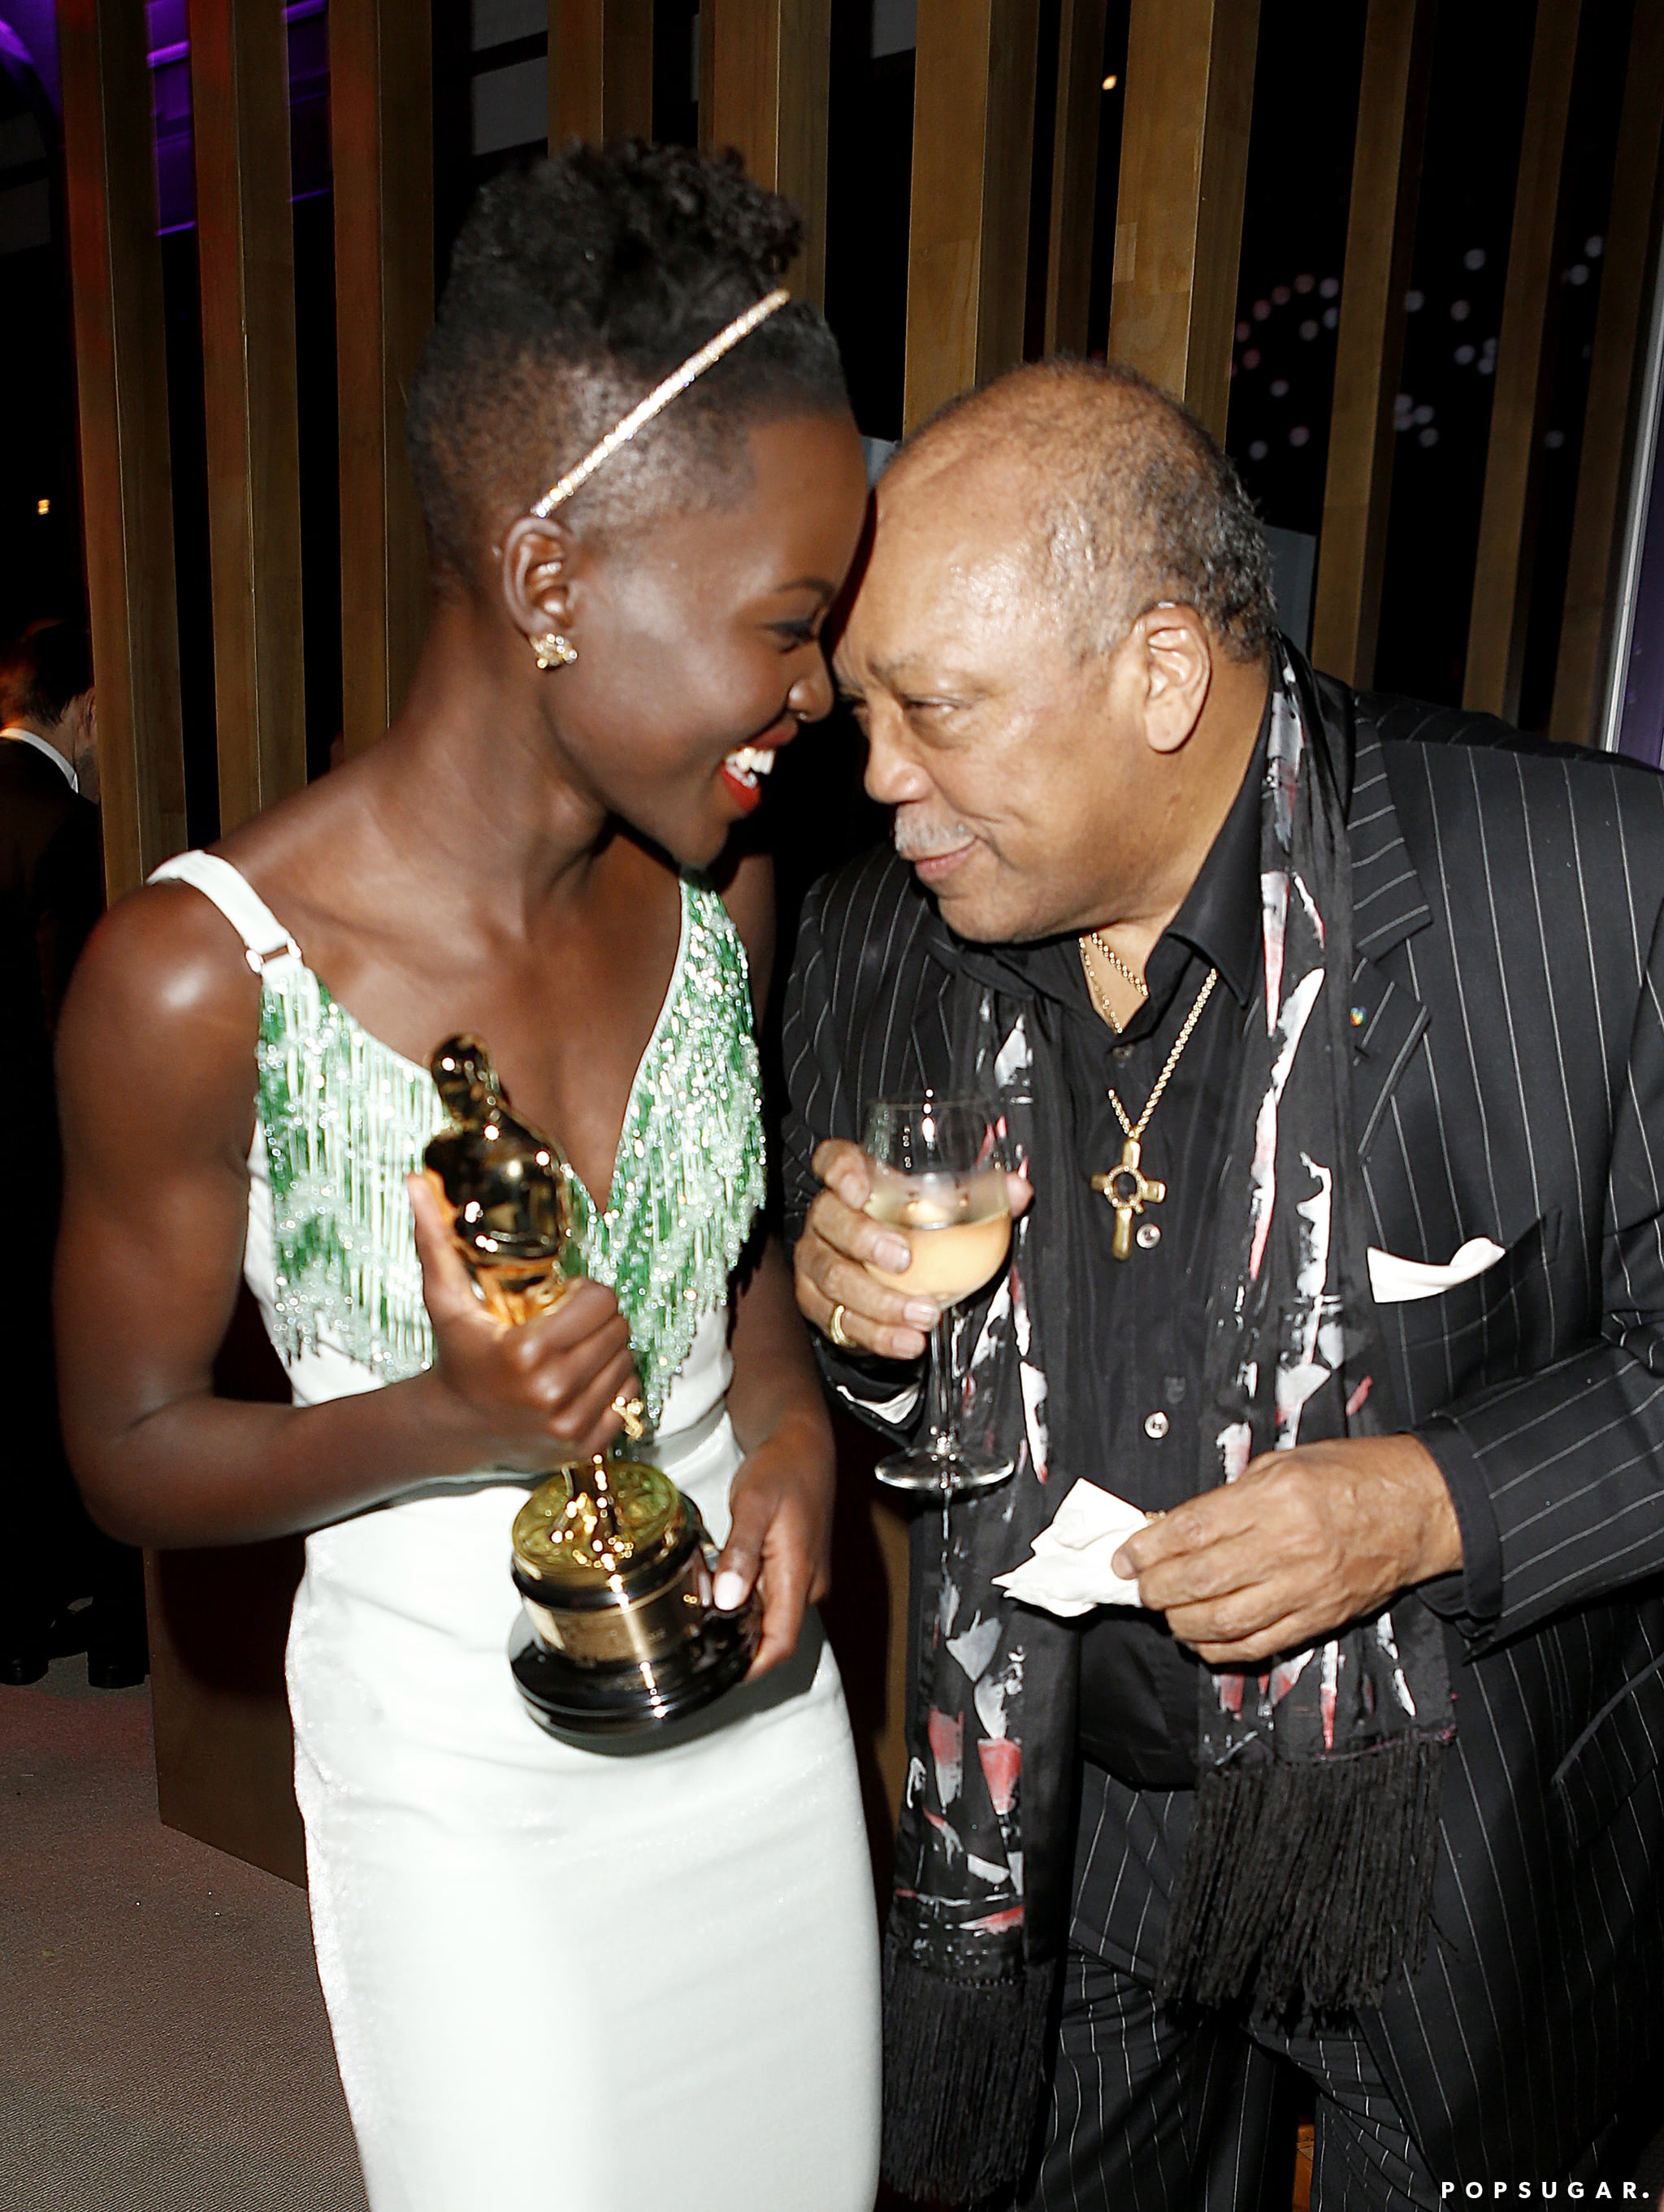 Lupita Nyong'o shared a winning moment with Quincy Jones at the Vanity Fair afterparty.